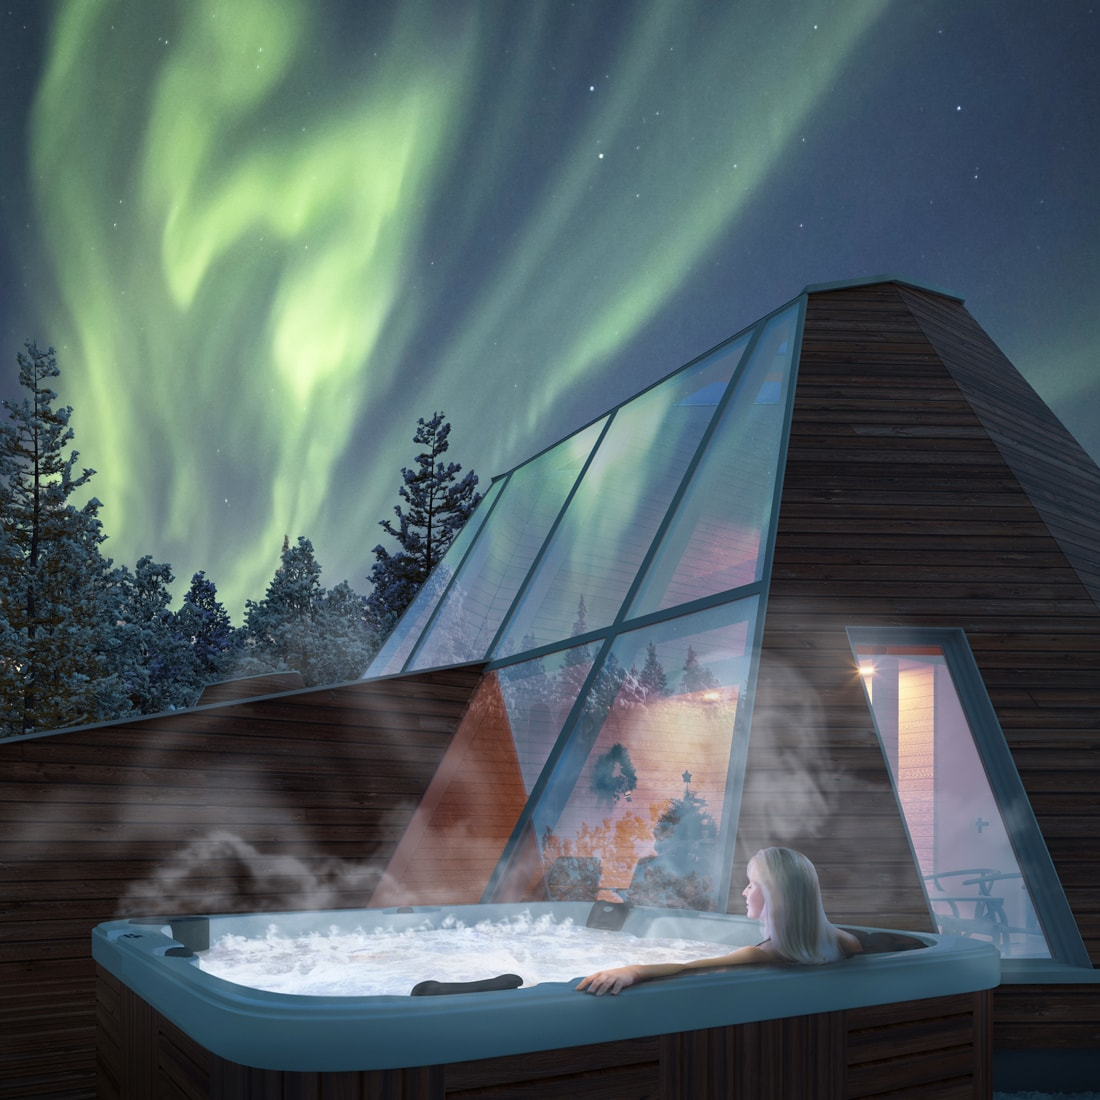 Snowman World Glass Resort in Santa Village Rovaniemi Lapland in winter jacuzzi and glass igloo